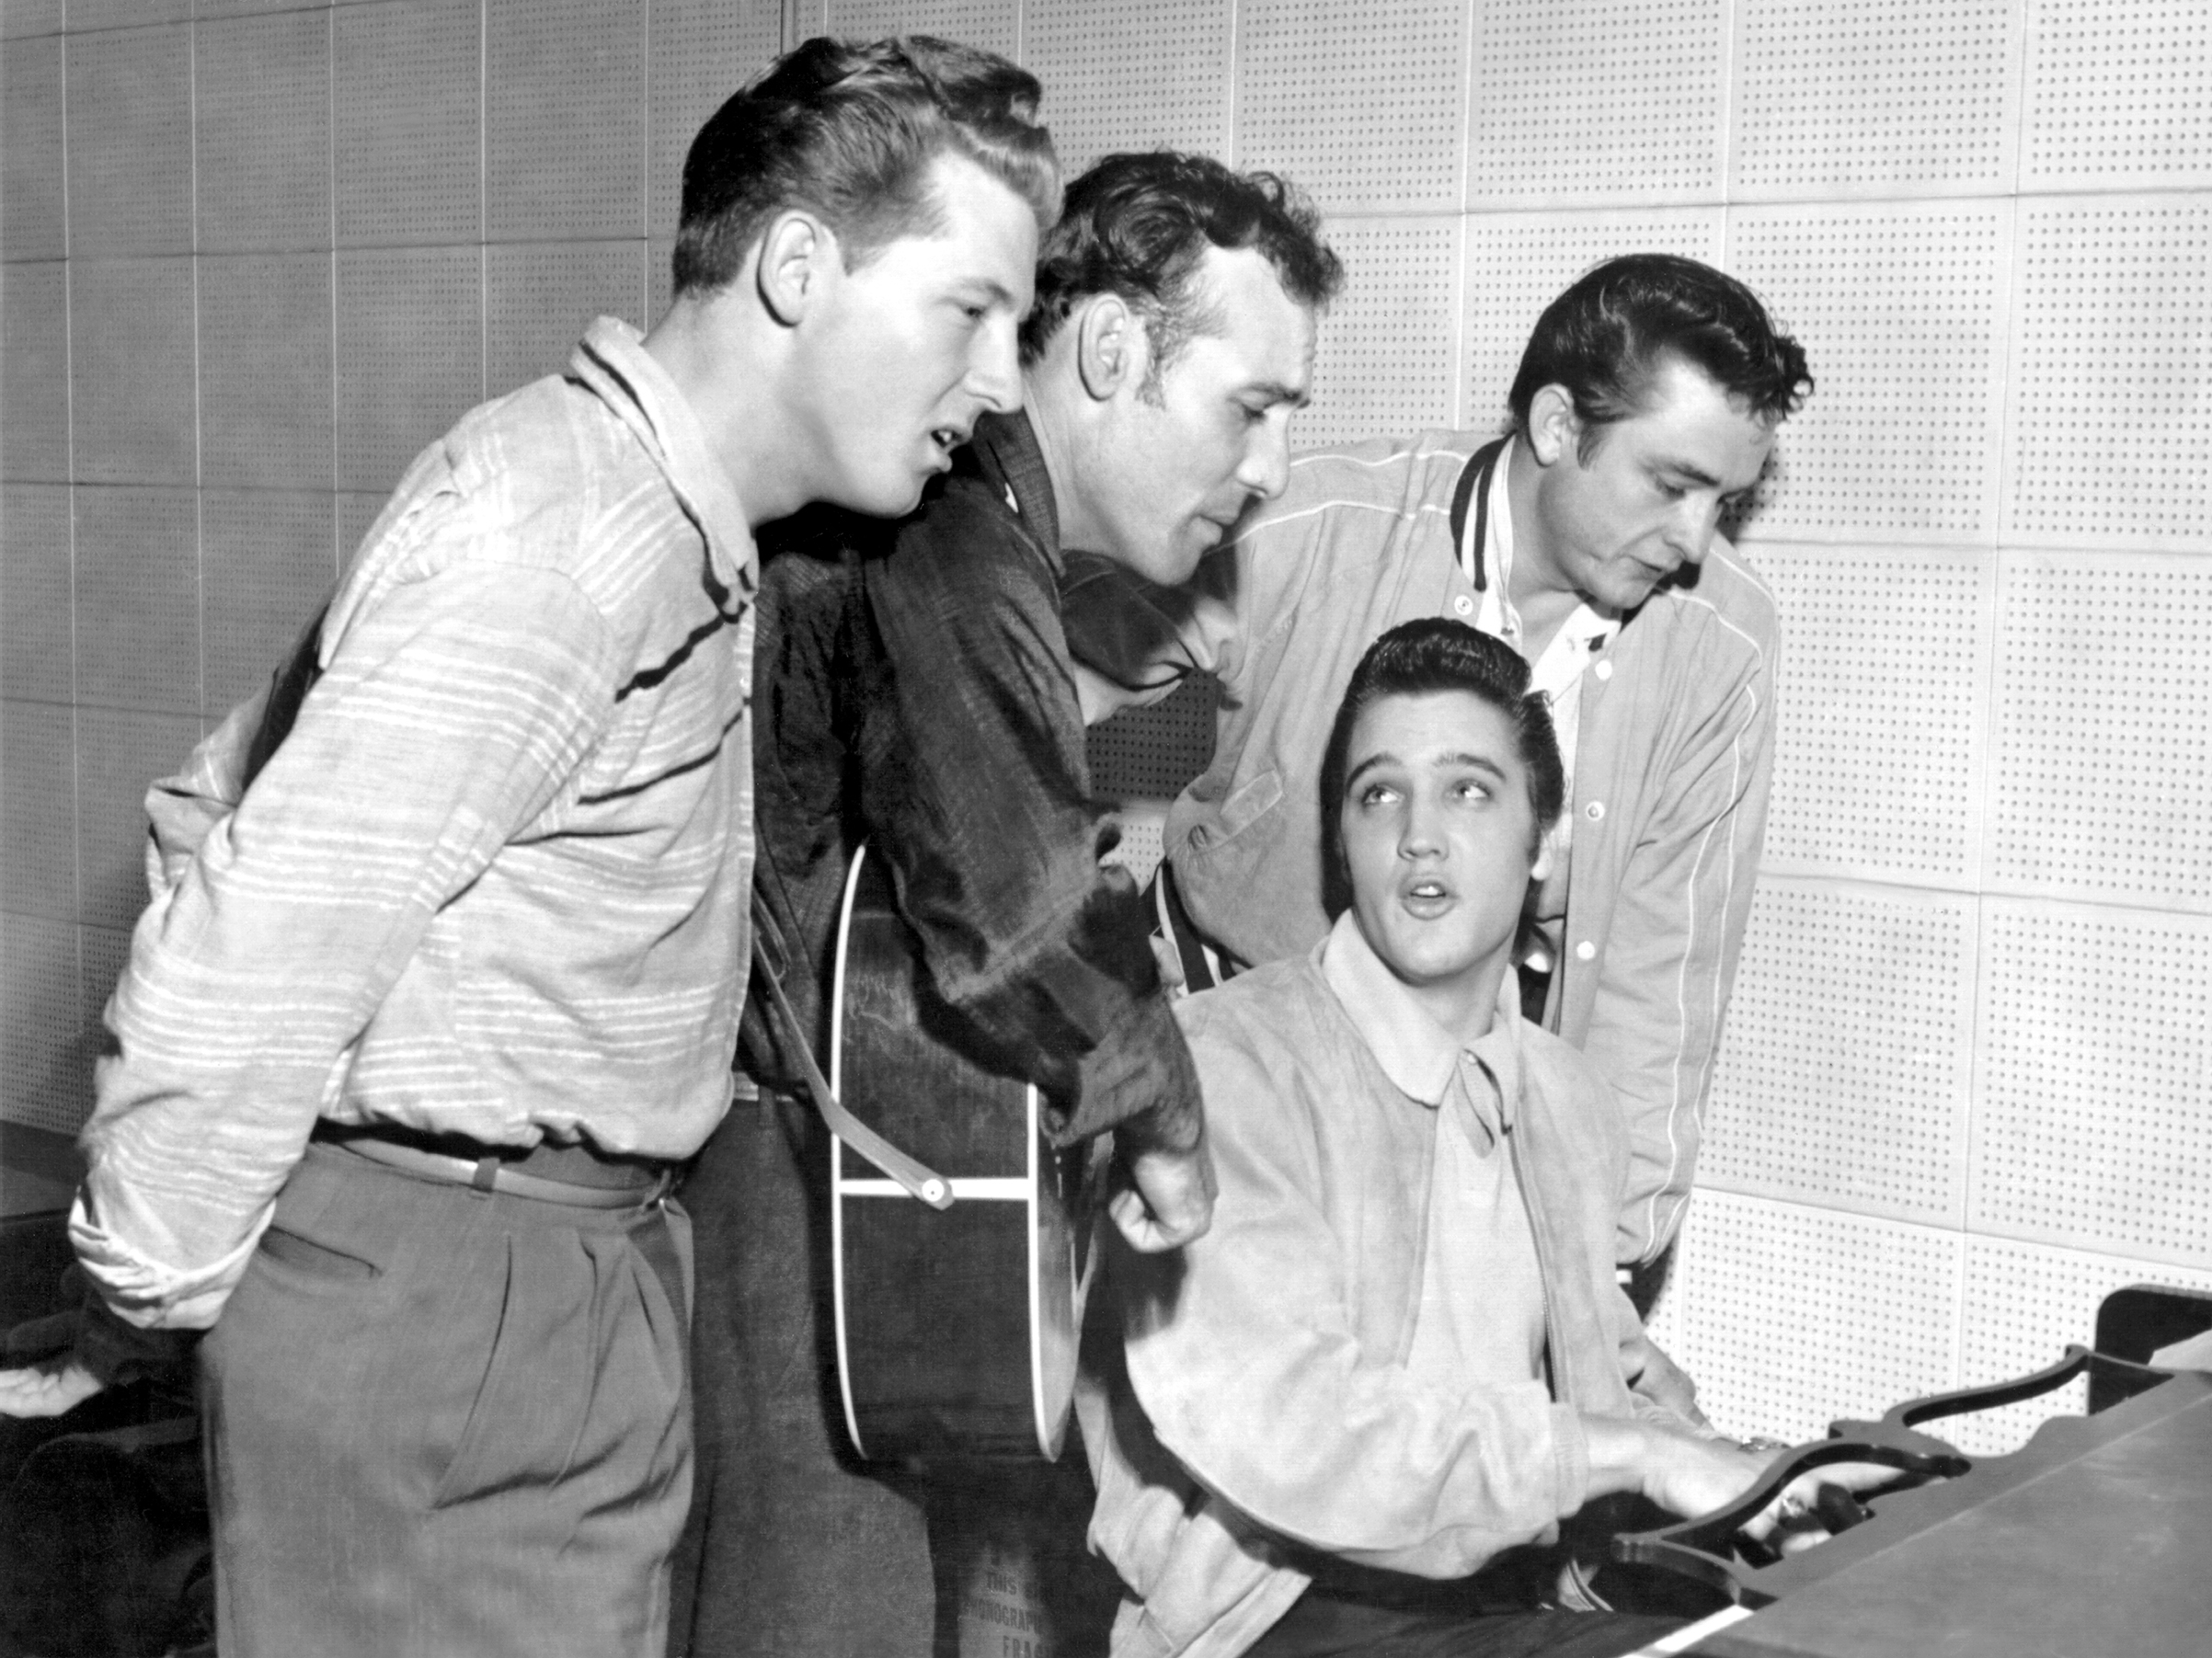 Rock and roll musicians Jerry Lee Lewis, Carl Perkins, Elvis Presley and Johnny Cash as  The Million Dollar Quartet  Dec. 4, 1956 in Memphis, Tenn. This was a one night jam session at Sun Studios.